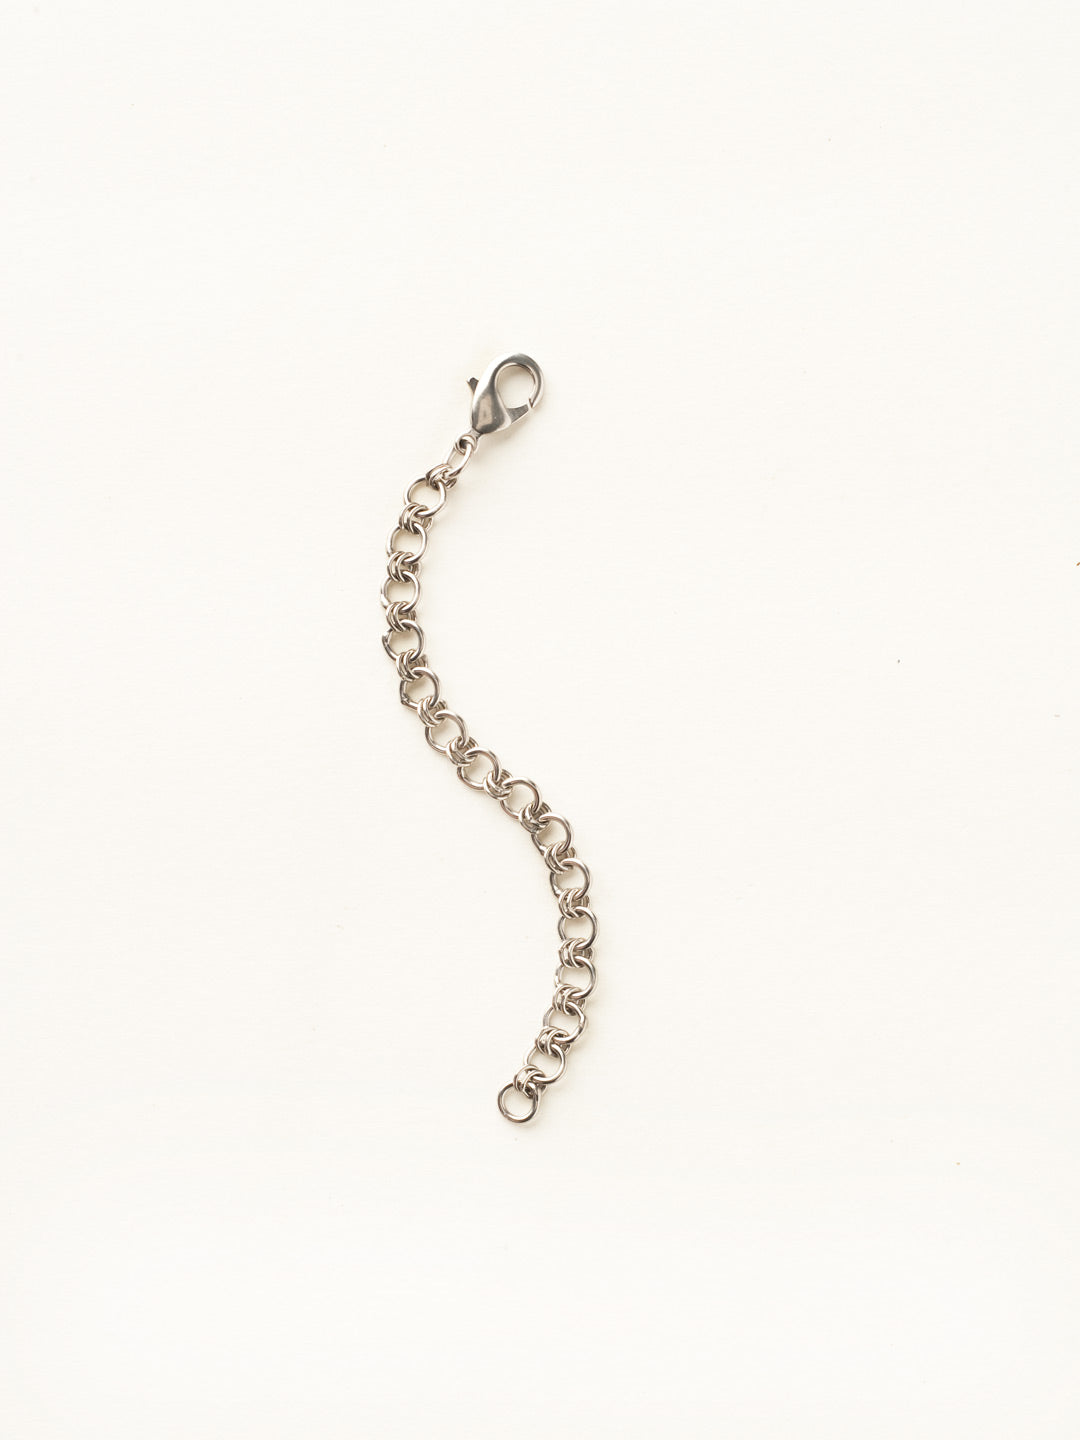 Necklace Extender - EXTAS